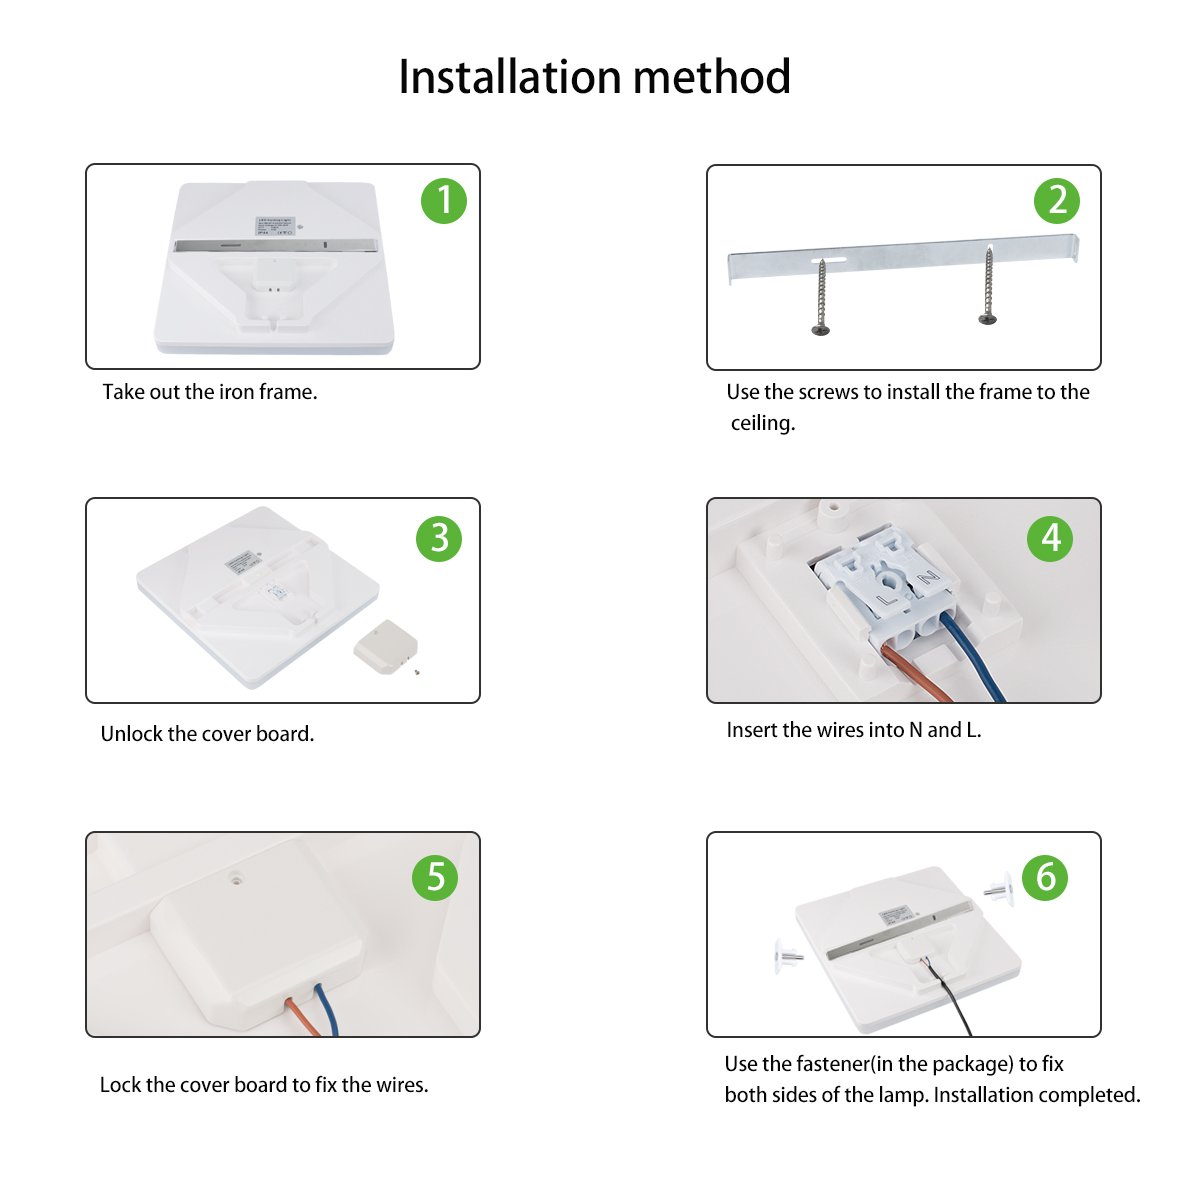 Led Ceiling Light Airand Lamp Flush Mount 2050lumens Wiring Diagram Waterproof Ip44 24w180w Equivalent 5000k For Bathroom Kitchen Bedroom Hallway Corridor